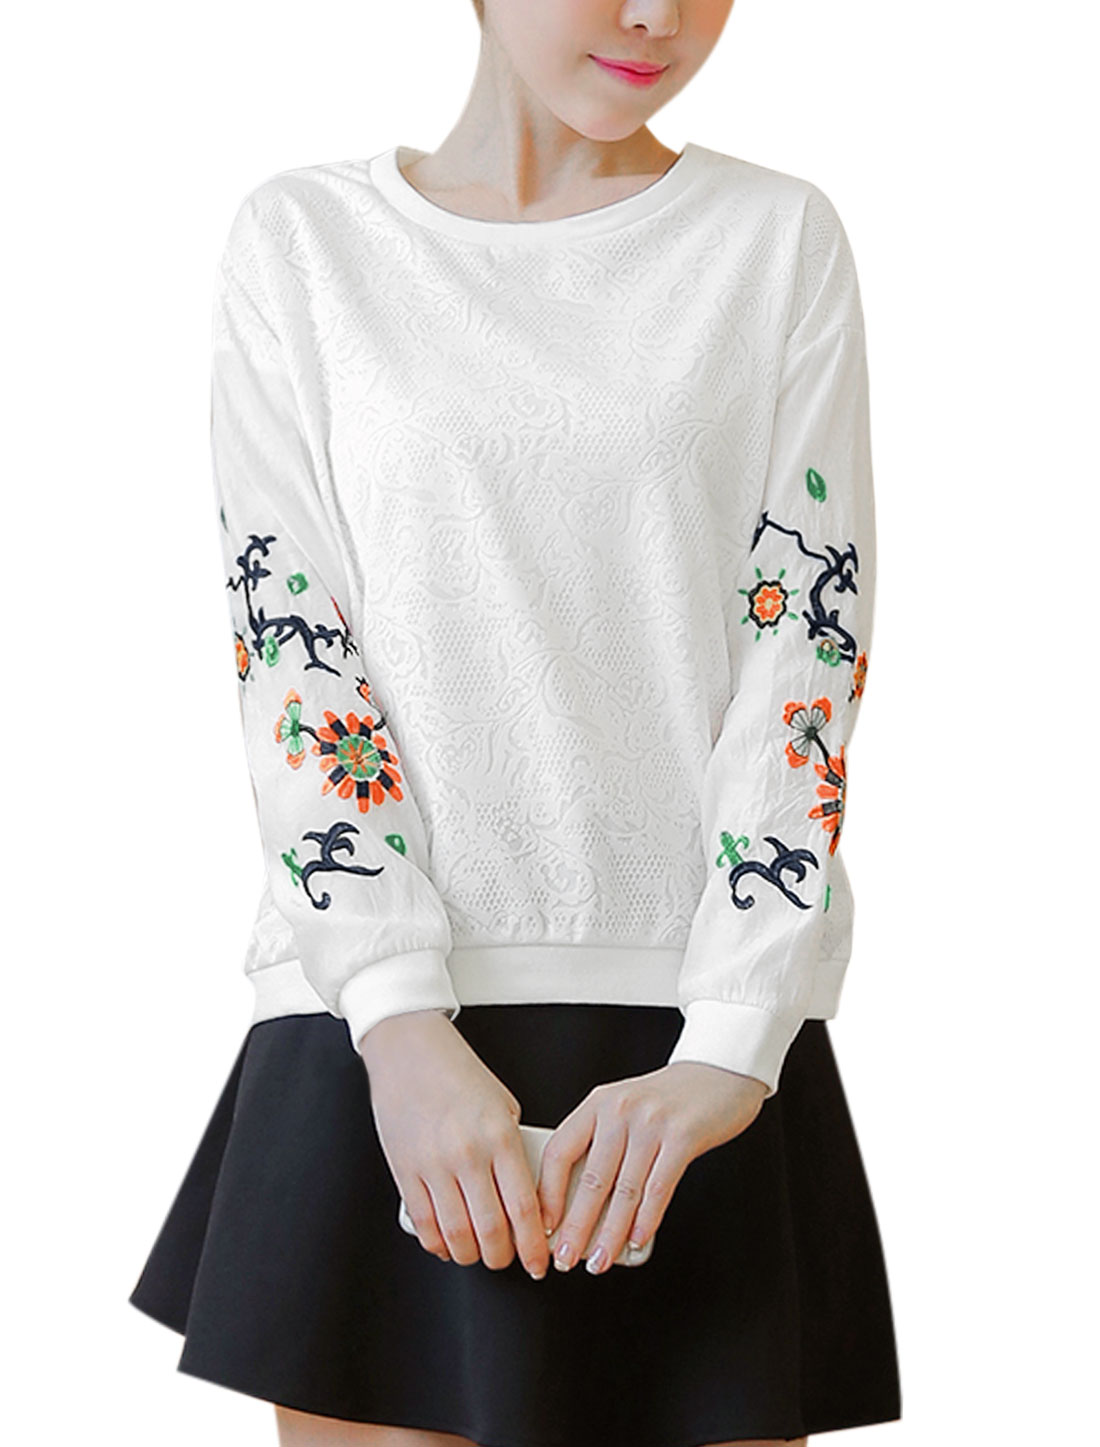 Women Floral Design Embroidery Slim Fit Long Sleeves T-Shirt White XS